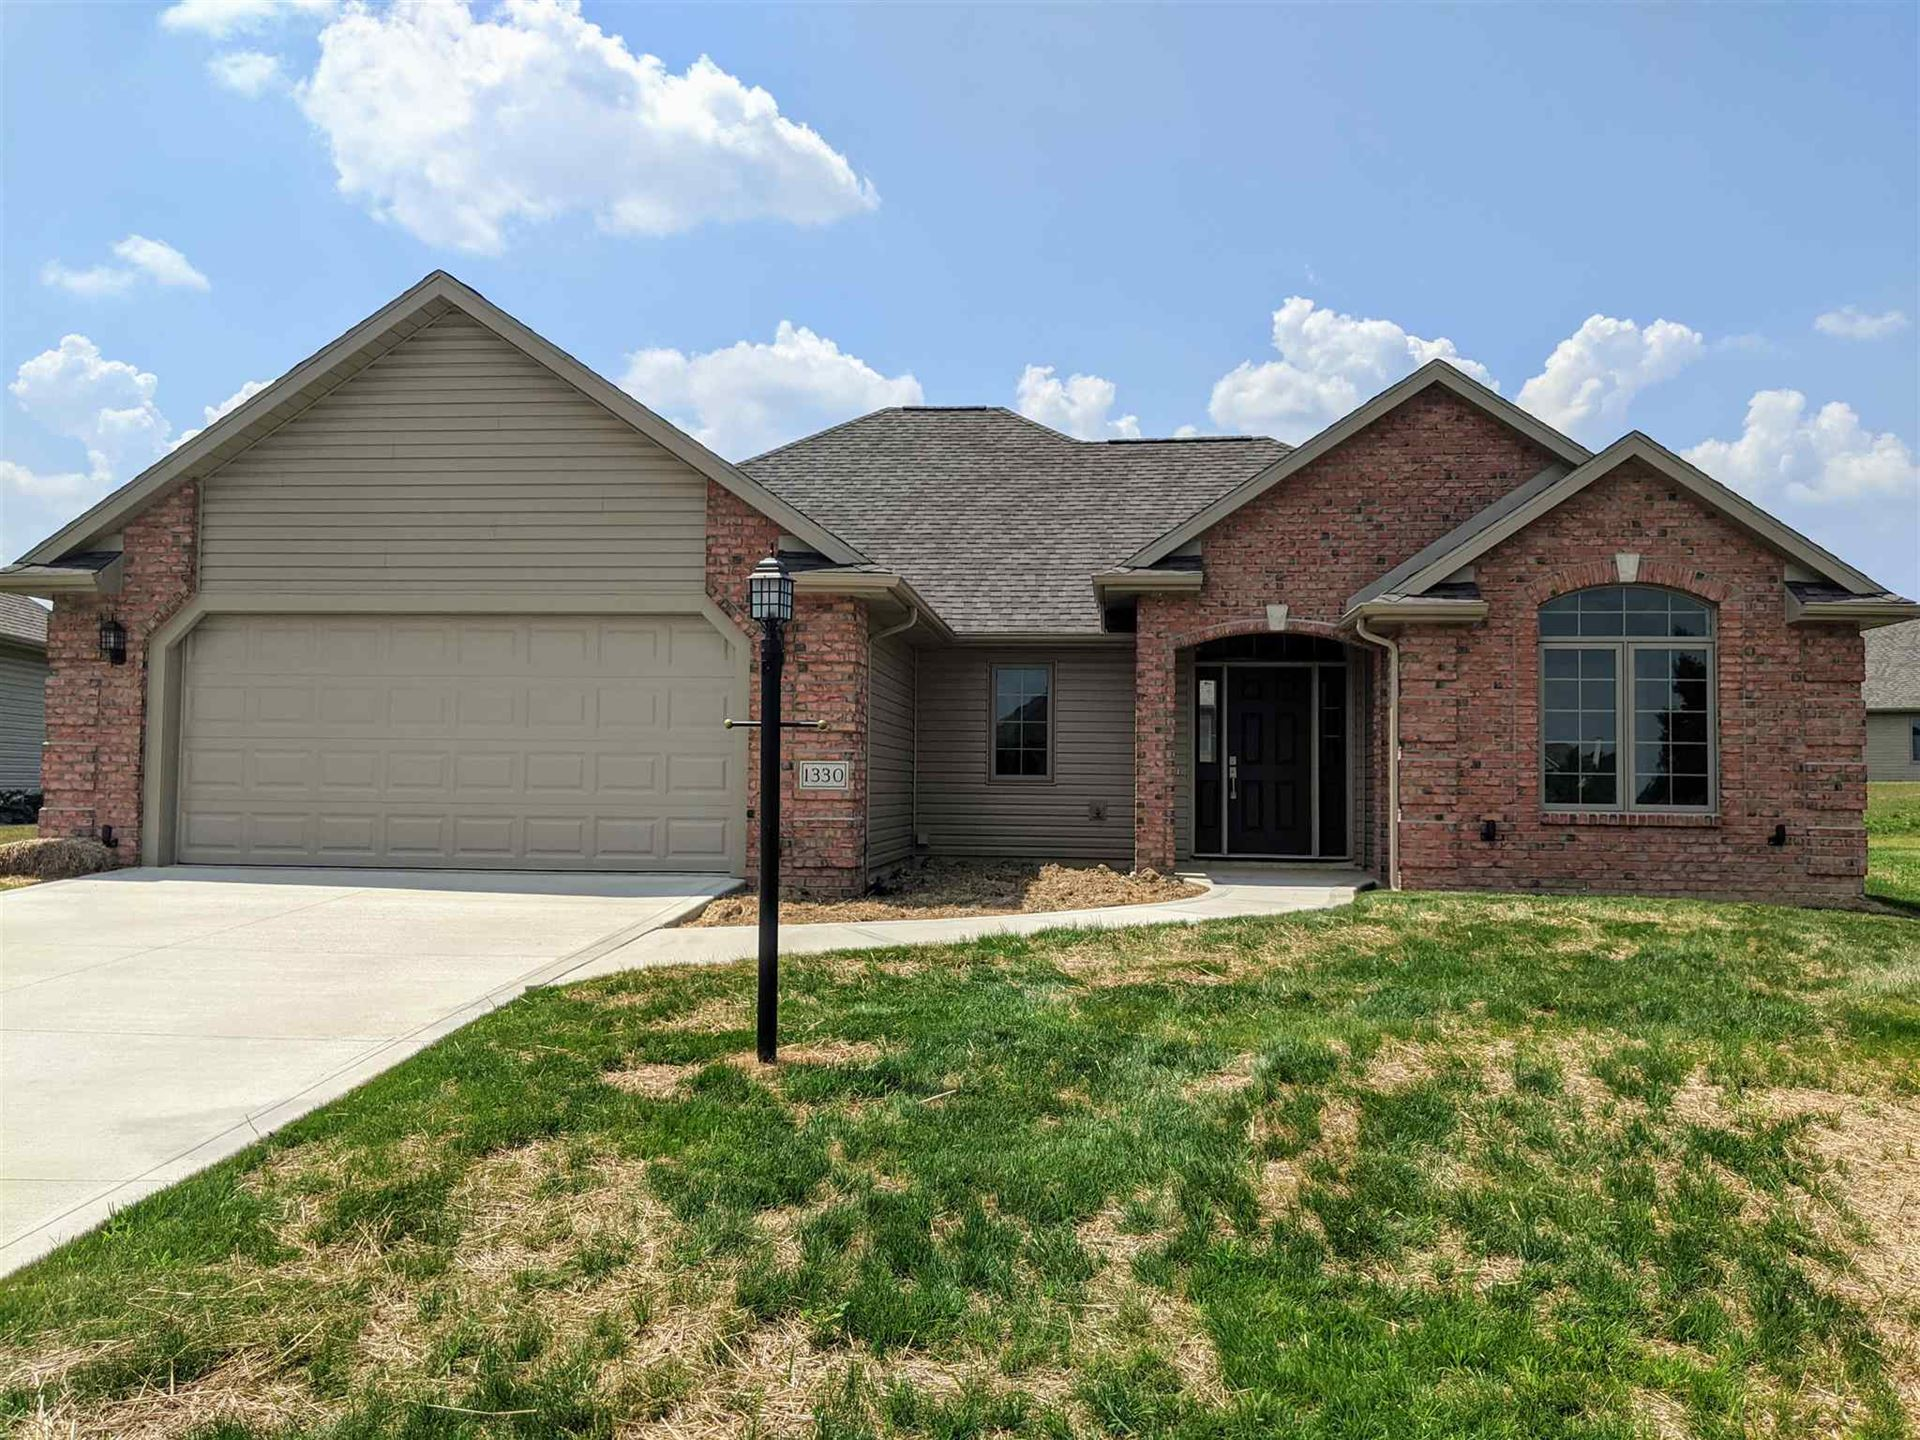 1330 Hollendale Drive, Bluffton, IN 46714 - #: 202025952